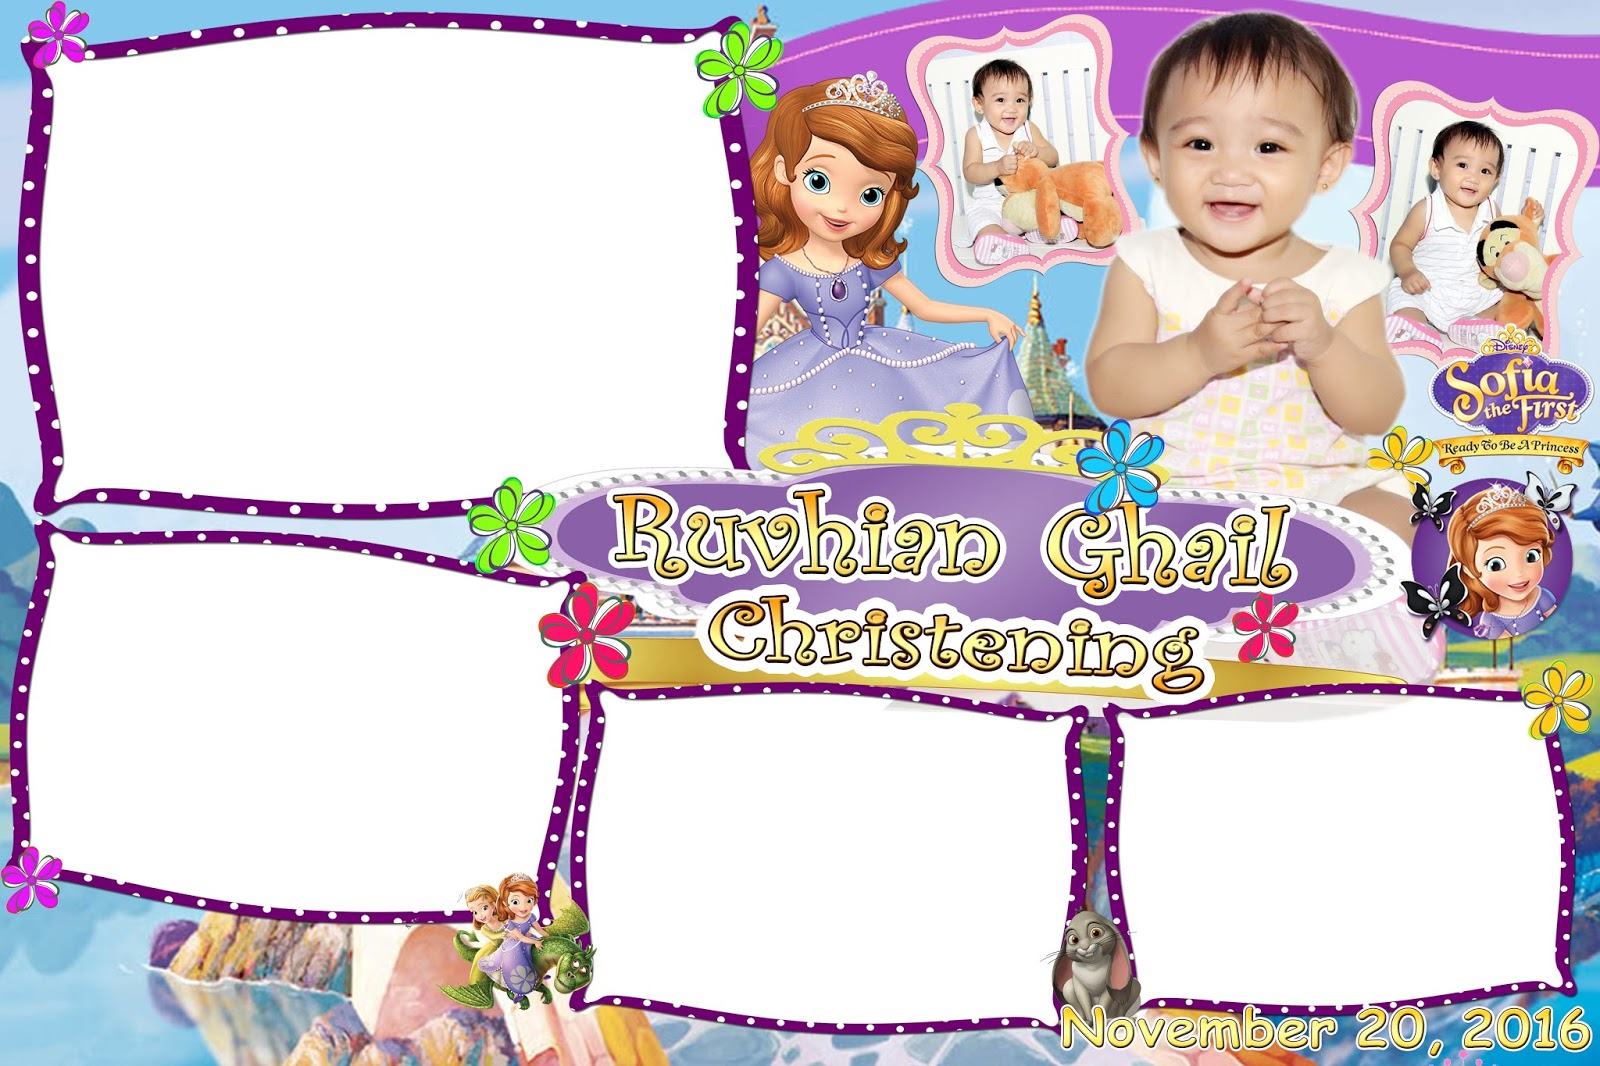 Sofia The First Photo Booth Design Get Layout